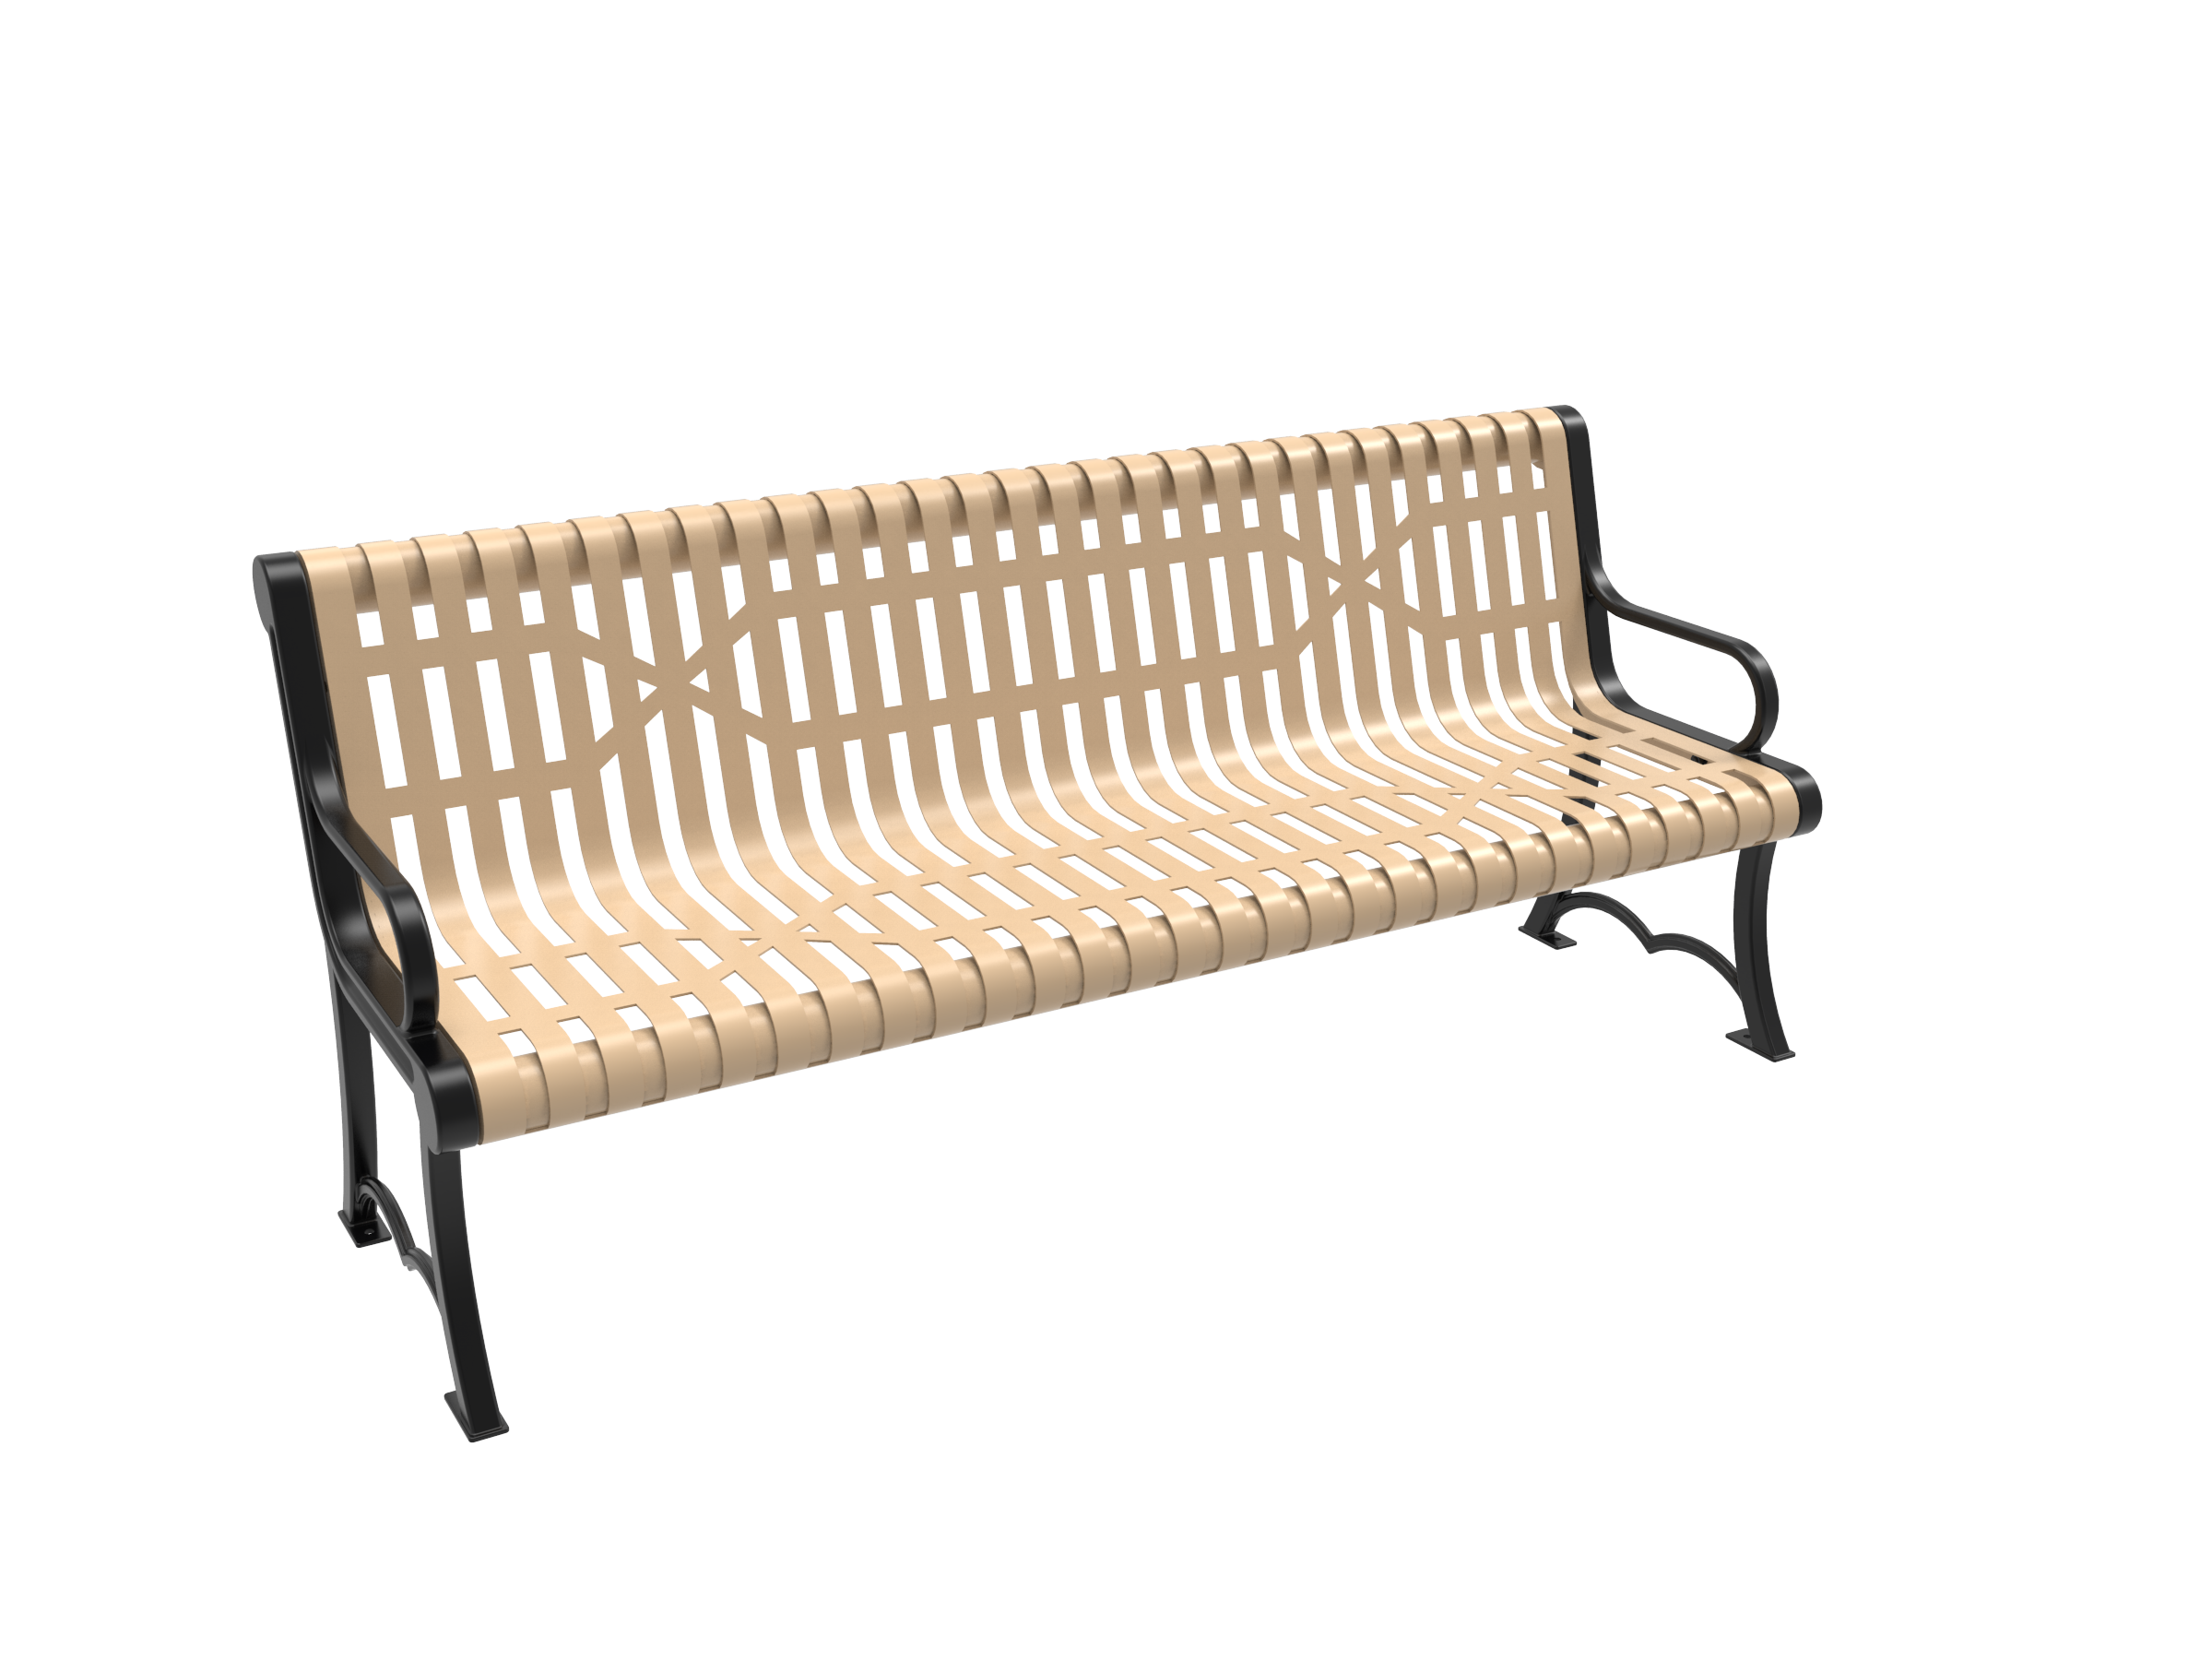 4' Austin Bench with Arm